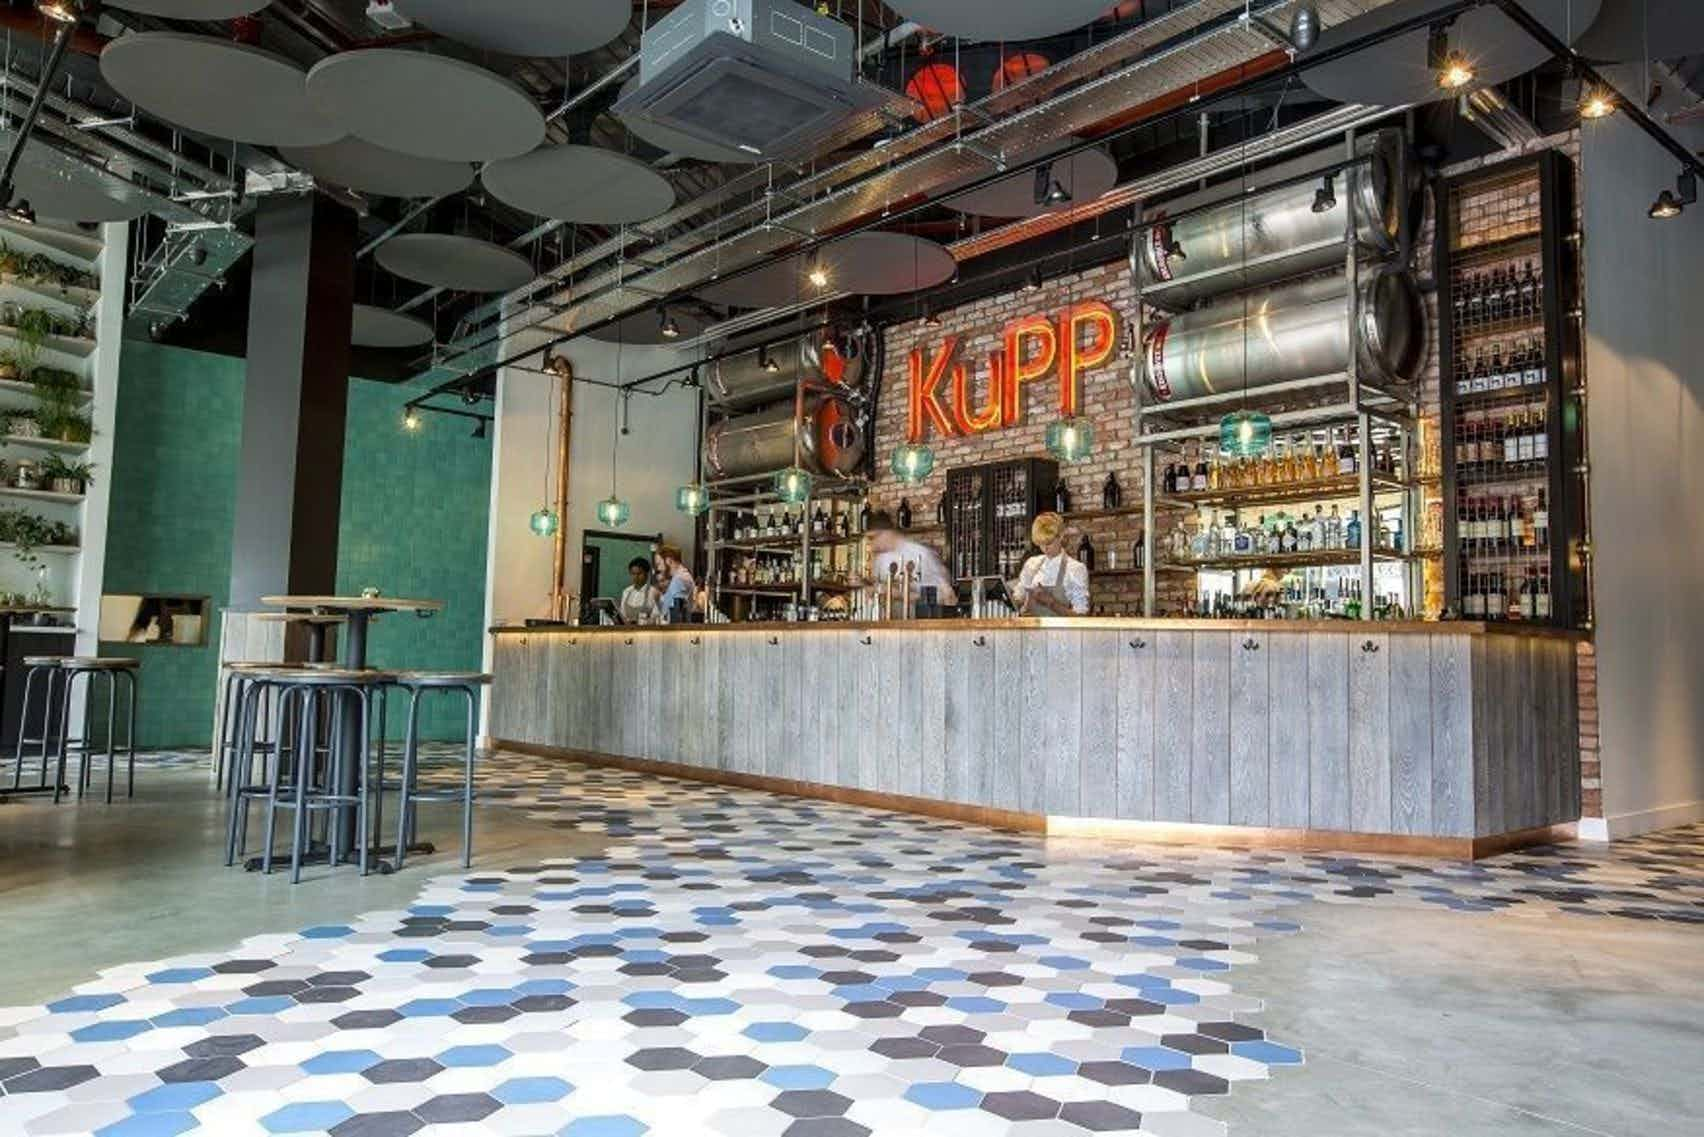 Scandinavian-Inspired Casual All-Day Dining, KuPP